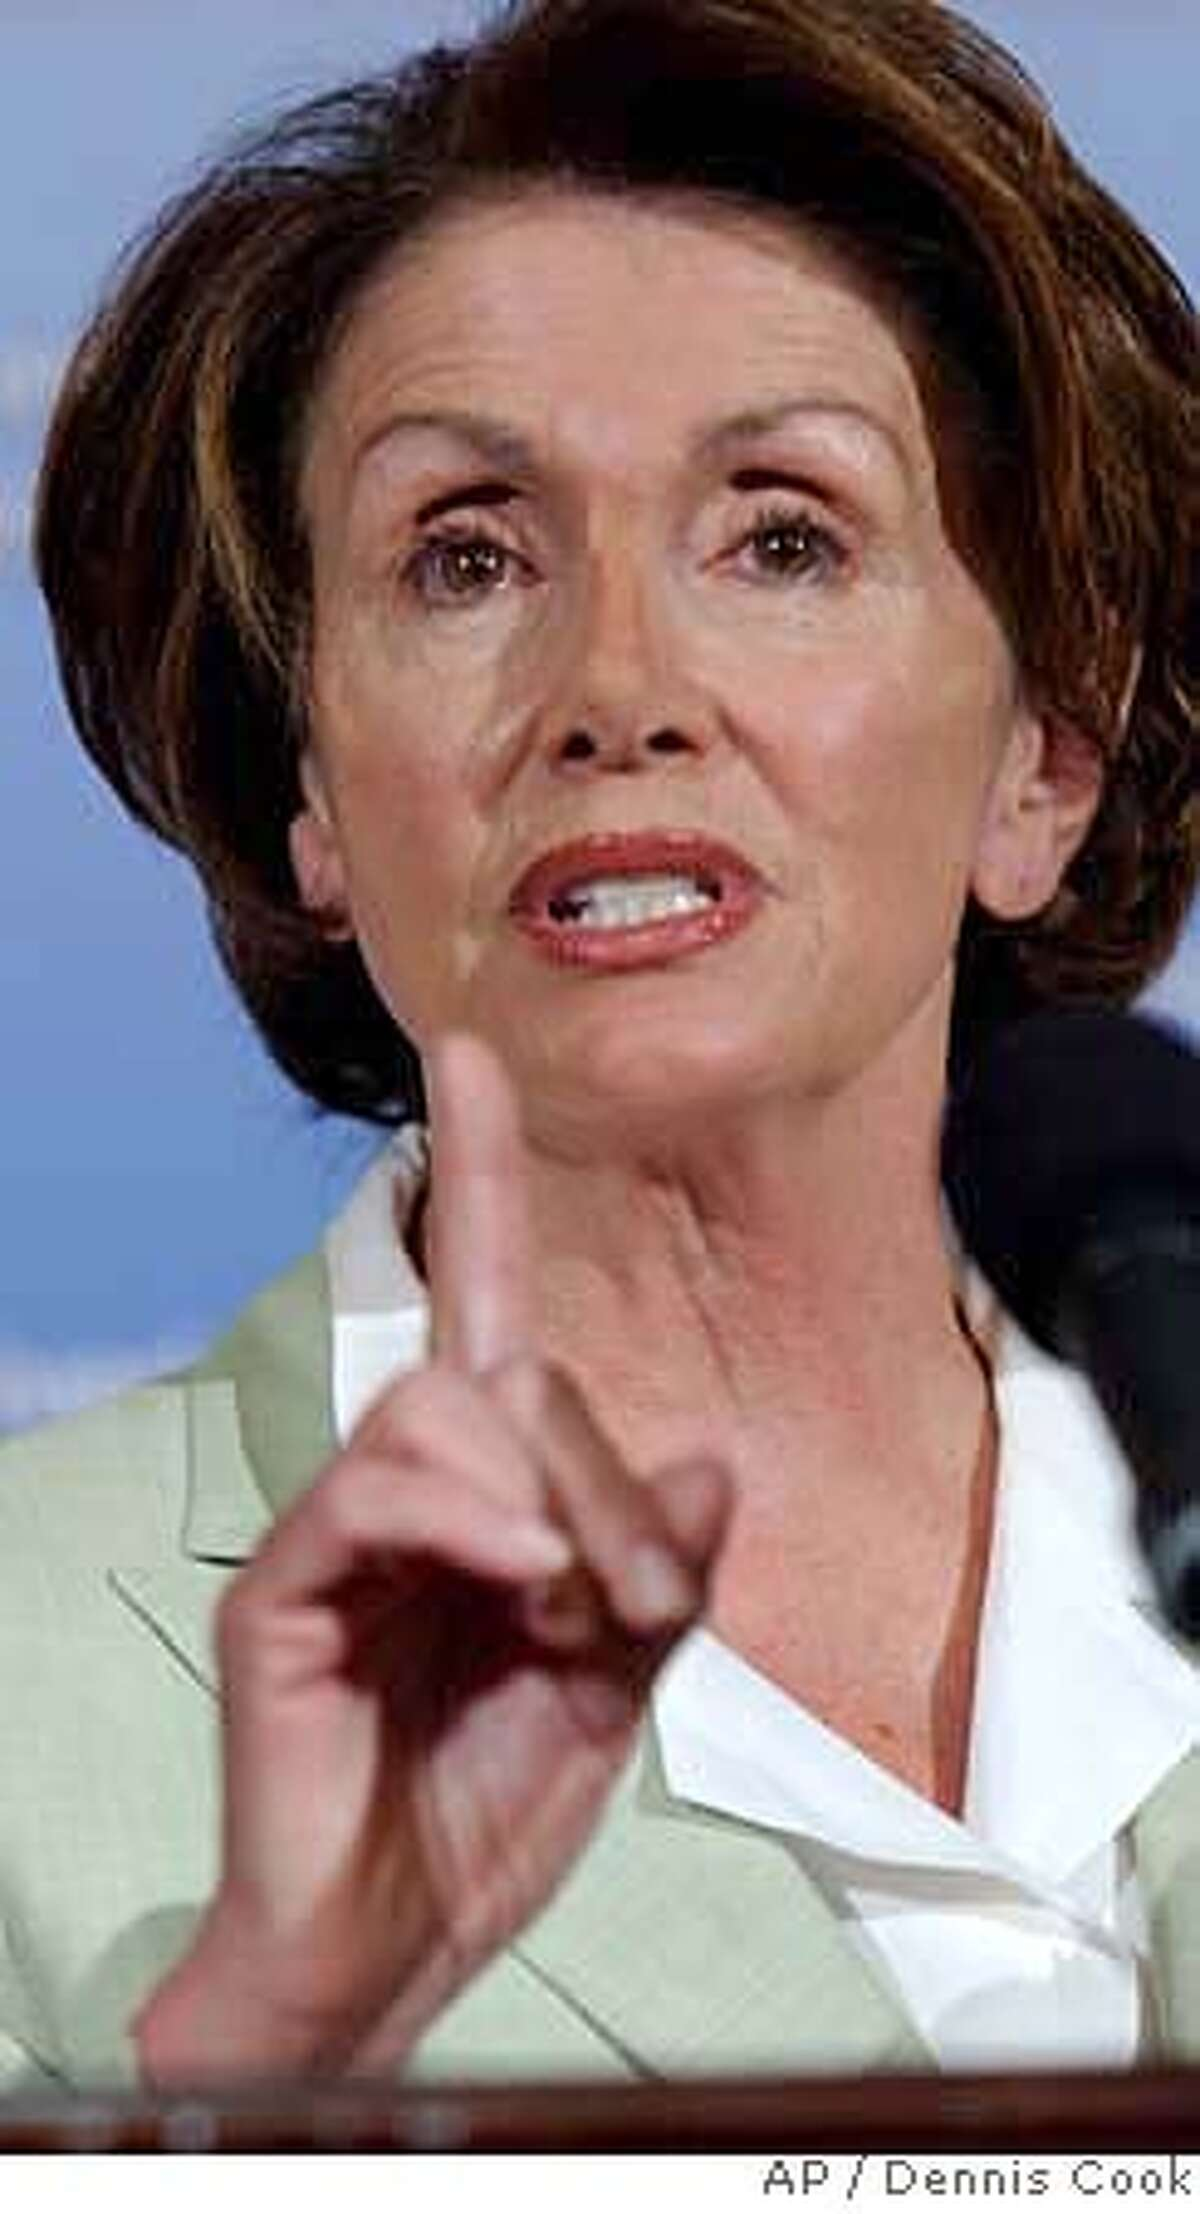 House Speaker Nancy Pelosi of Calif., gestures during a news conference on Capitol Hill in Washington, Friday, June 29, 2007. (AP Photo/Dennis Cook)